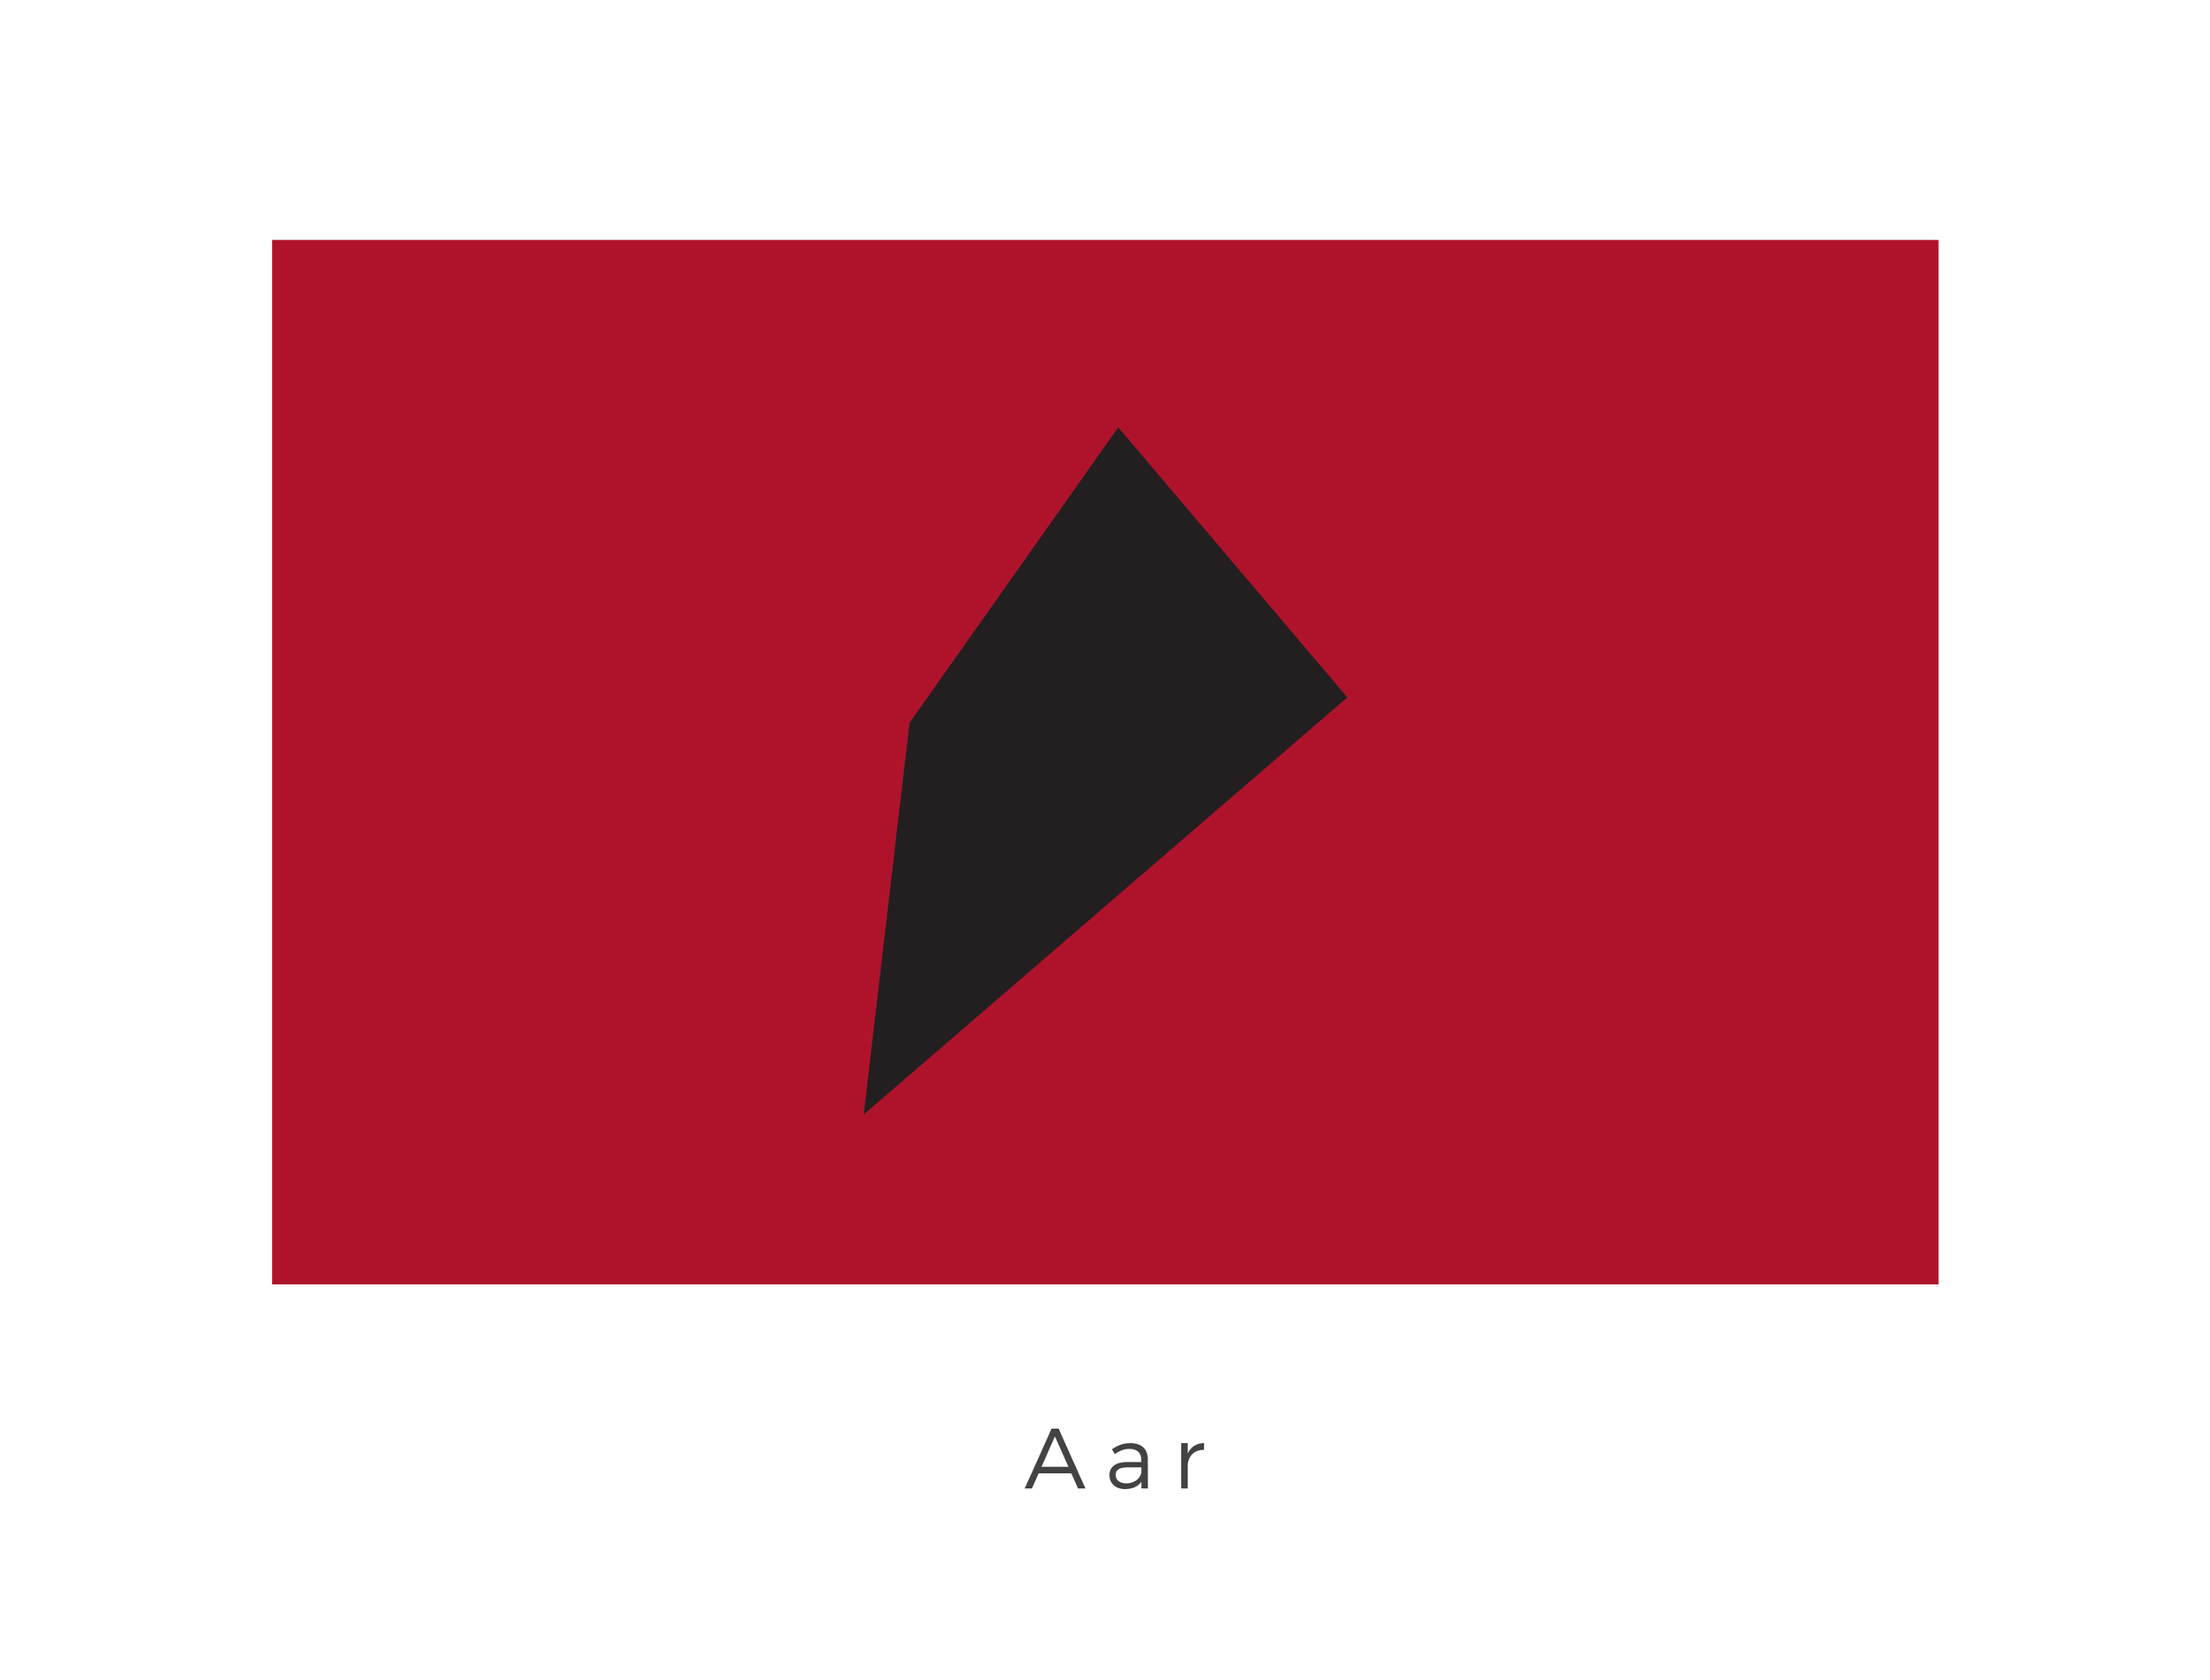 Aar  was a planet in the Aar system of the Nijune sector, part of the Outer Rim Territories. It was homeworld to the Aar'aa species, reptilian sentients often employed as enforcers by the Hutts, a species known for its many crime lords. The red of the flag is taken from the colour of the Aar'aa species eyes and symbolises the agressive nature of the planet.